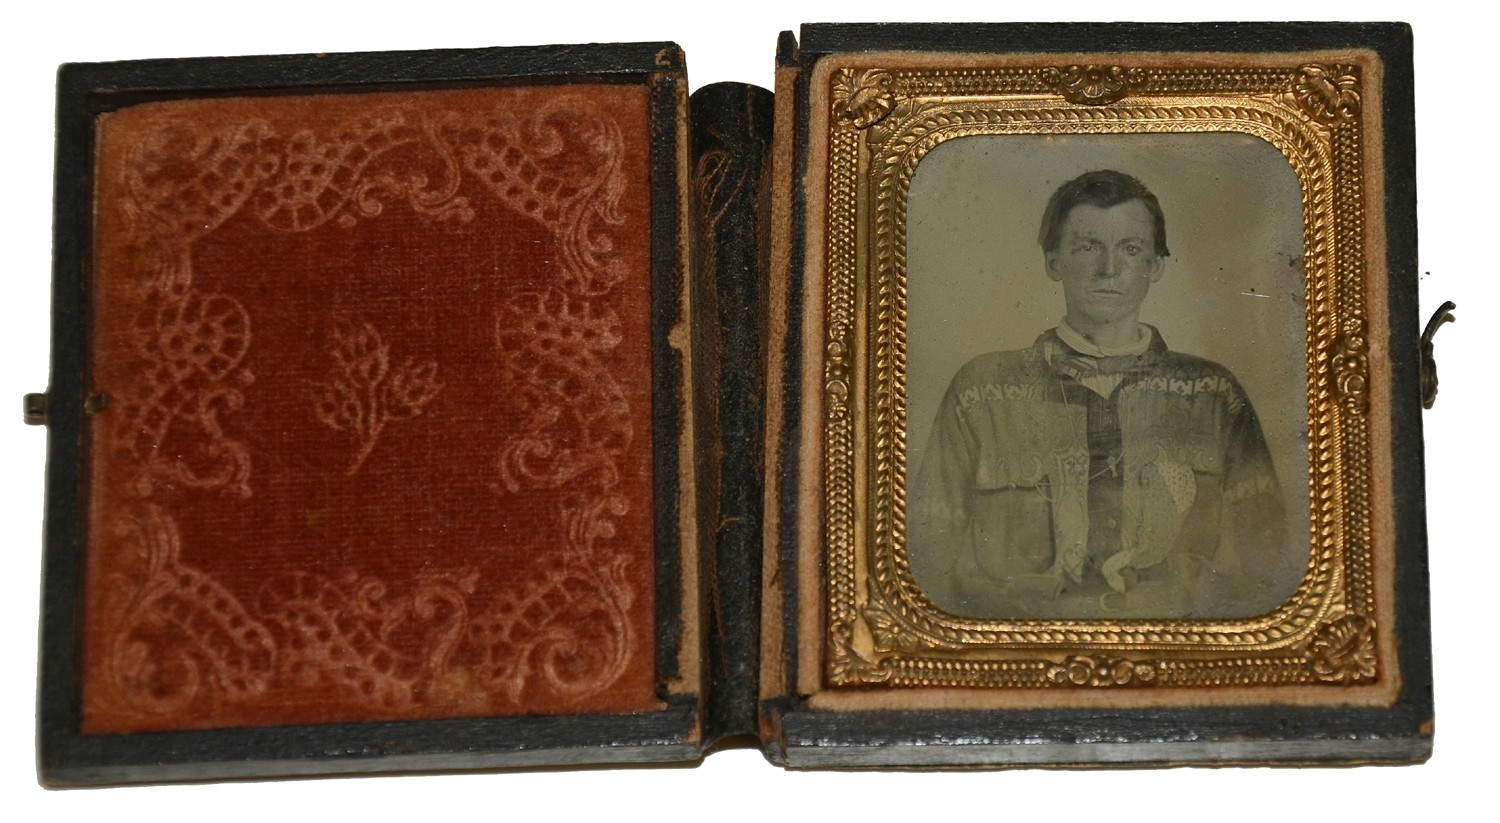 NINTH PLATE AMBROTYPE OF A YOUNG MAN – COWBOY OR A REBEL?